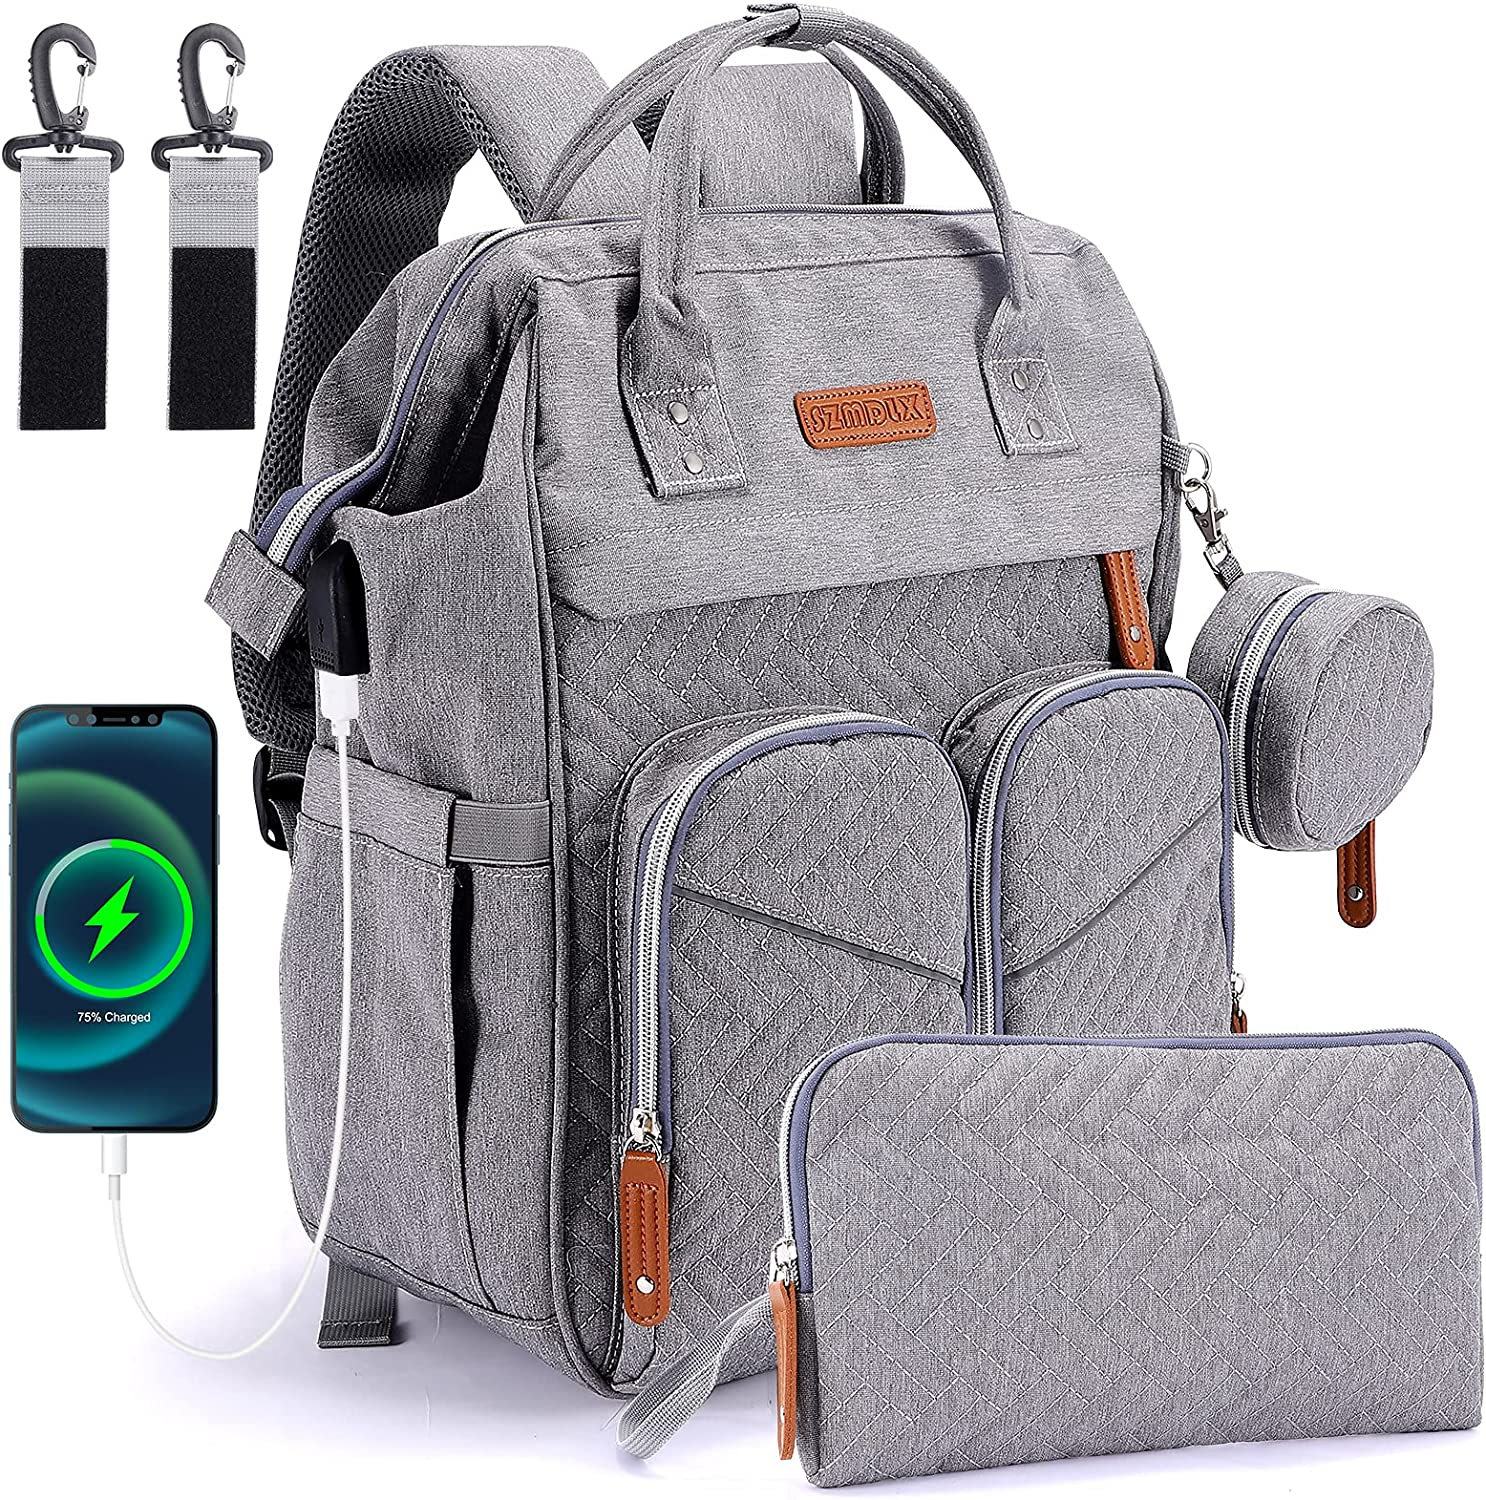 Diaper Bag Backpack, Foldable Mummy Bag with Charging Port, Multi-Functional Baby Backpack,Diaper Bag with Bassinet Mat Pad for Dad Mom Travel Waterproof (Grey)